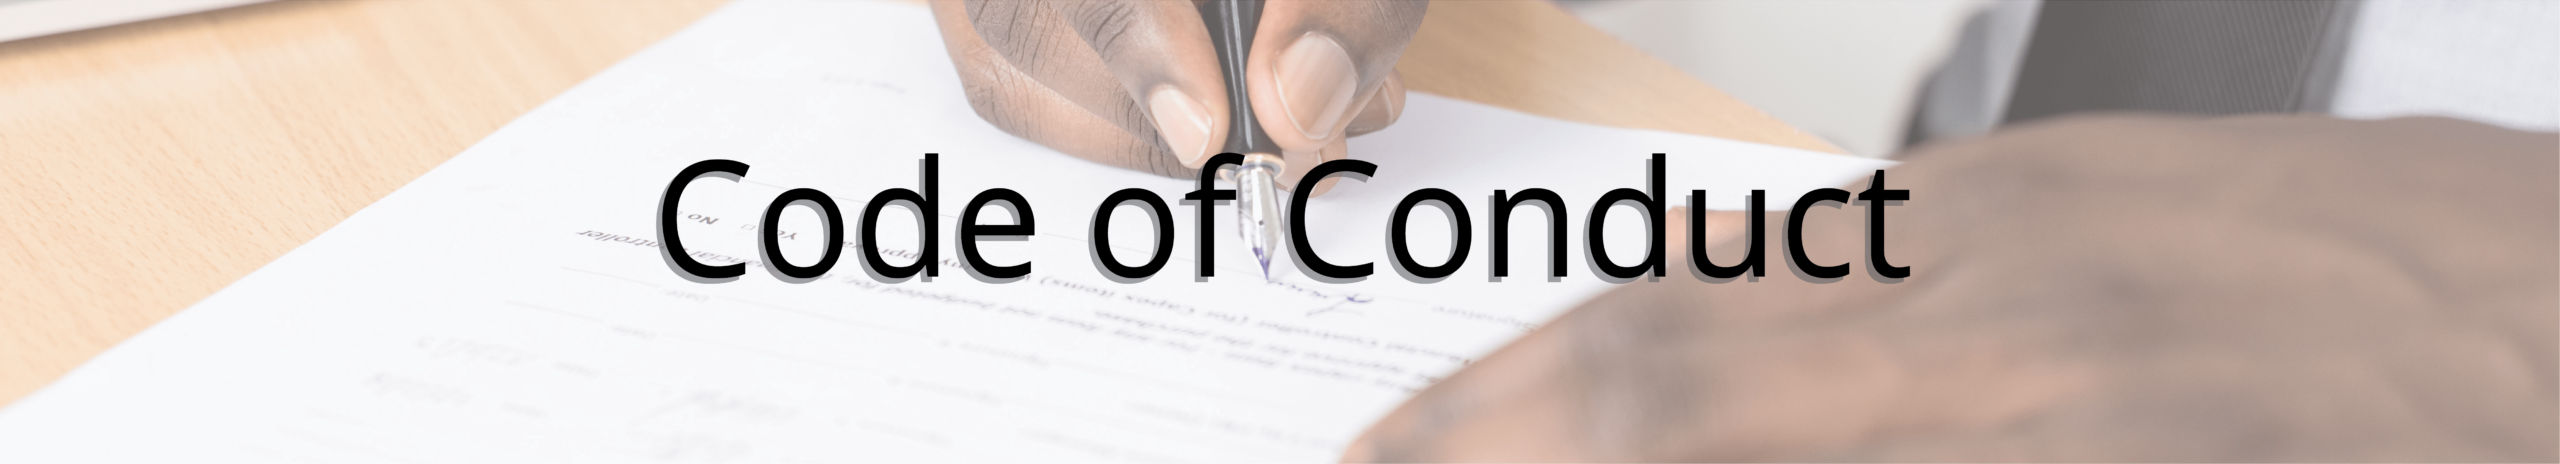 Code of Conduct Header - image of a man signing paperwork with the words Code of Conduct overlaid on top.